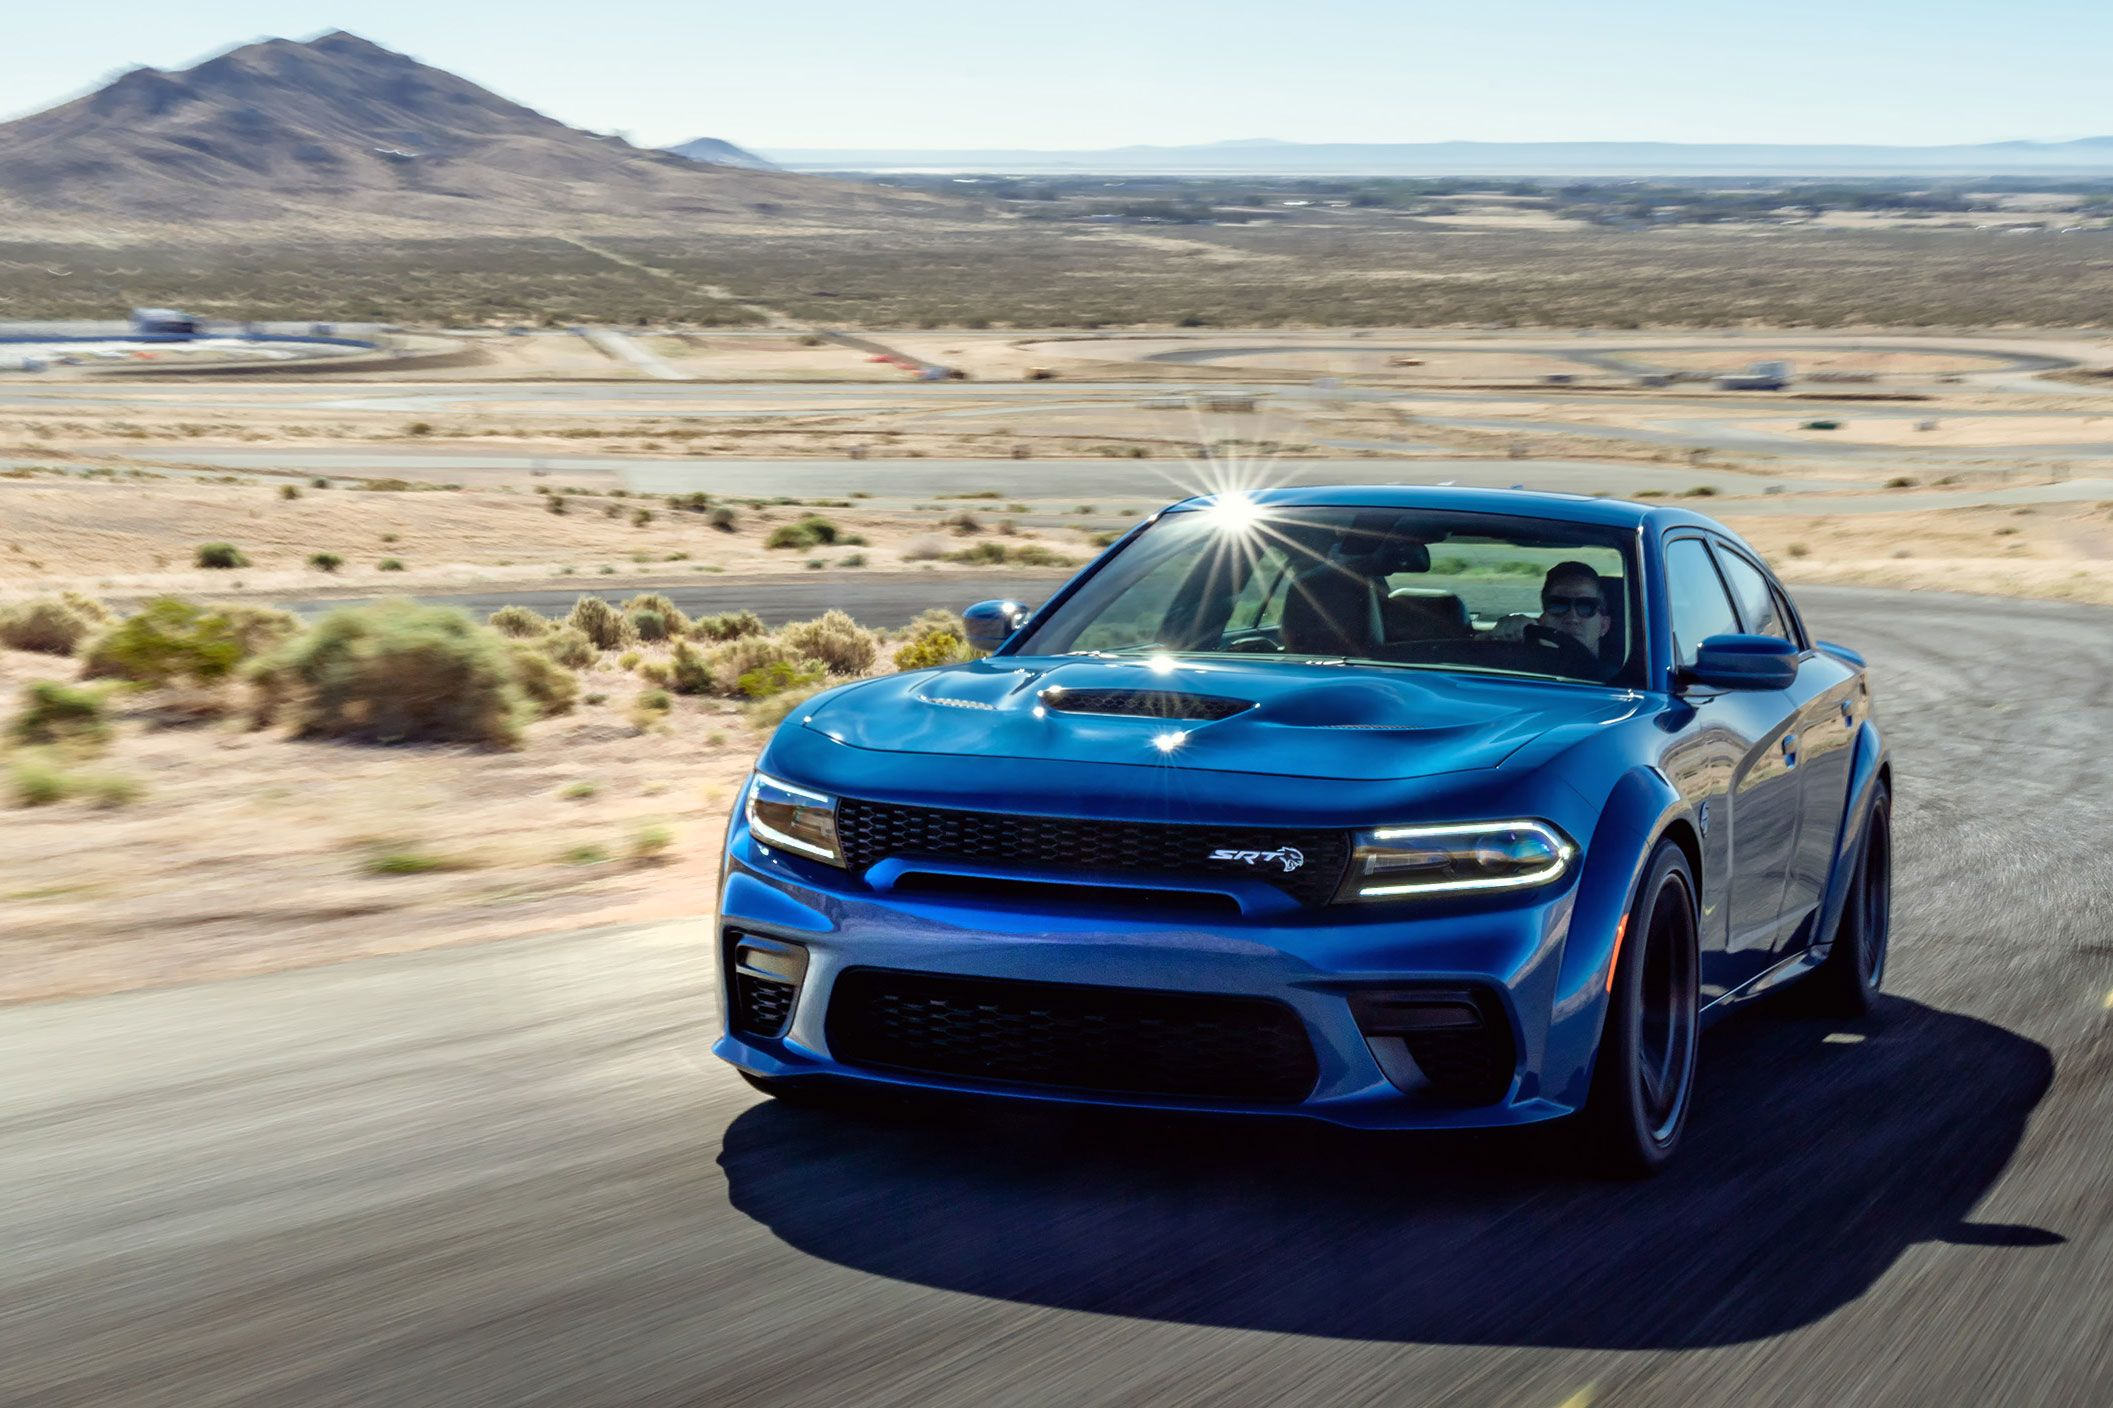 Dodge's new 2020 Charger SRT Hellcat packs 707 horsepower, top speed 196 mph